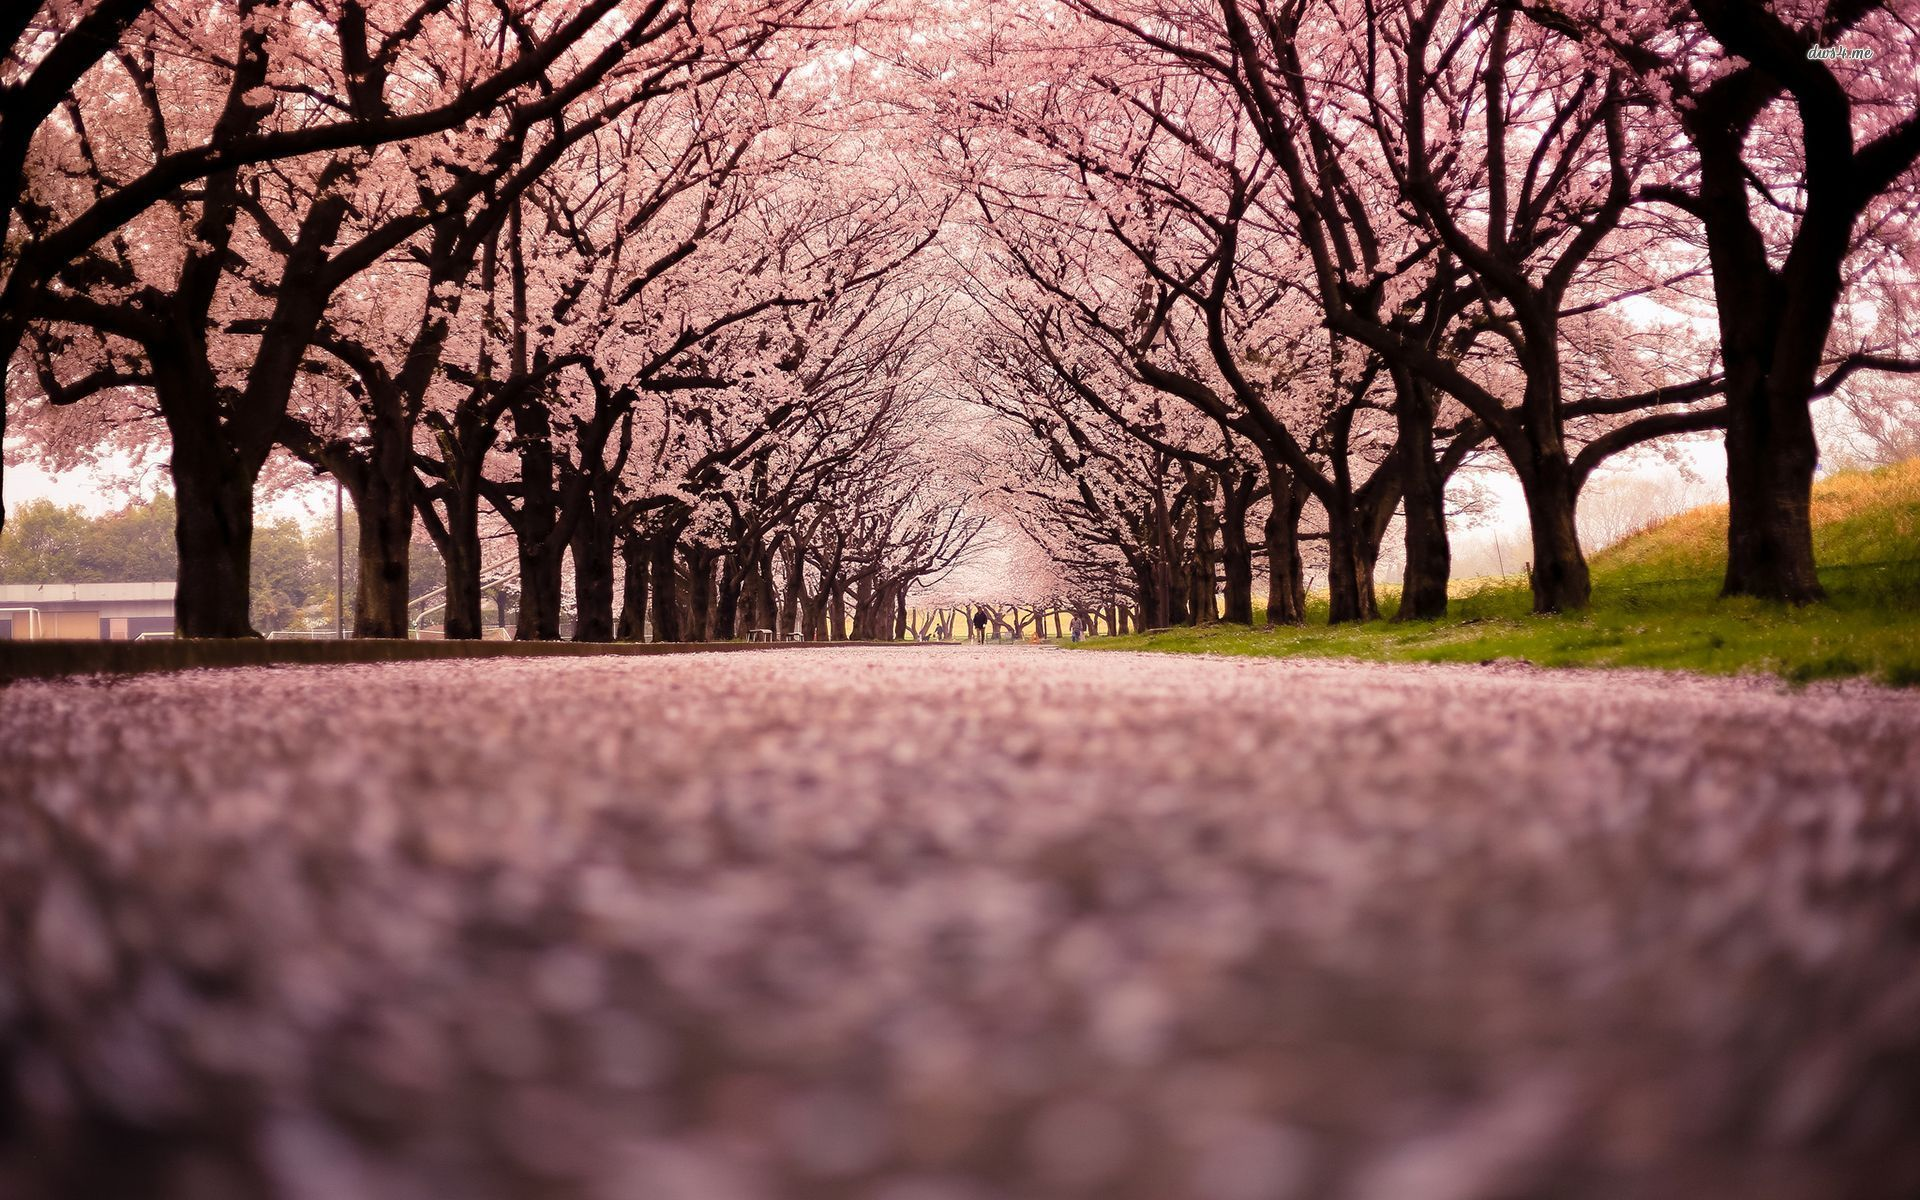 Cherry Trees In Bloom Japan Cherry Blossom Wallpaper Cherry Blossom Background Cherry Blossom Tree